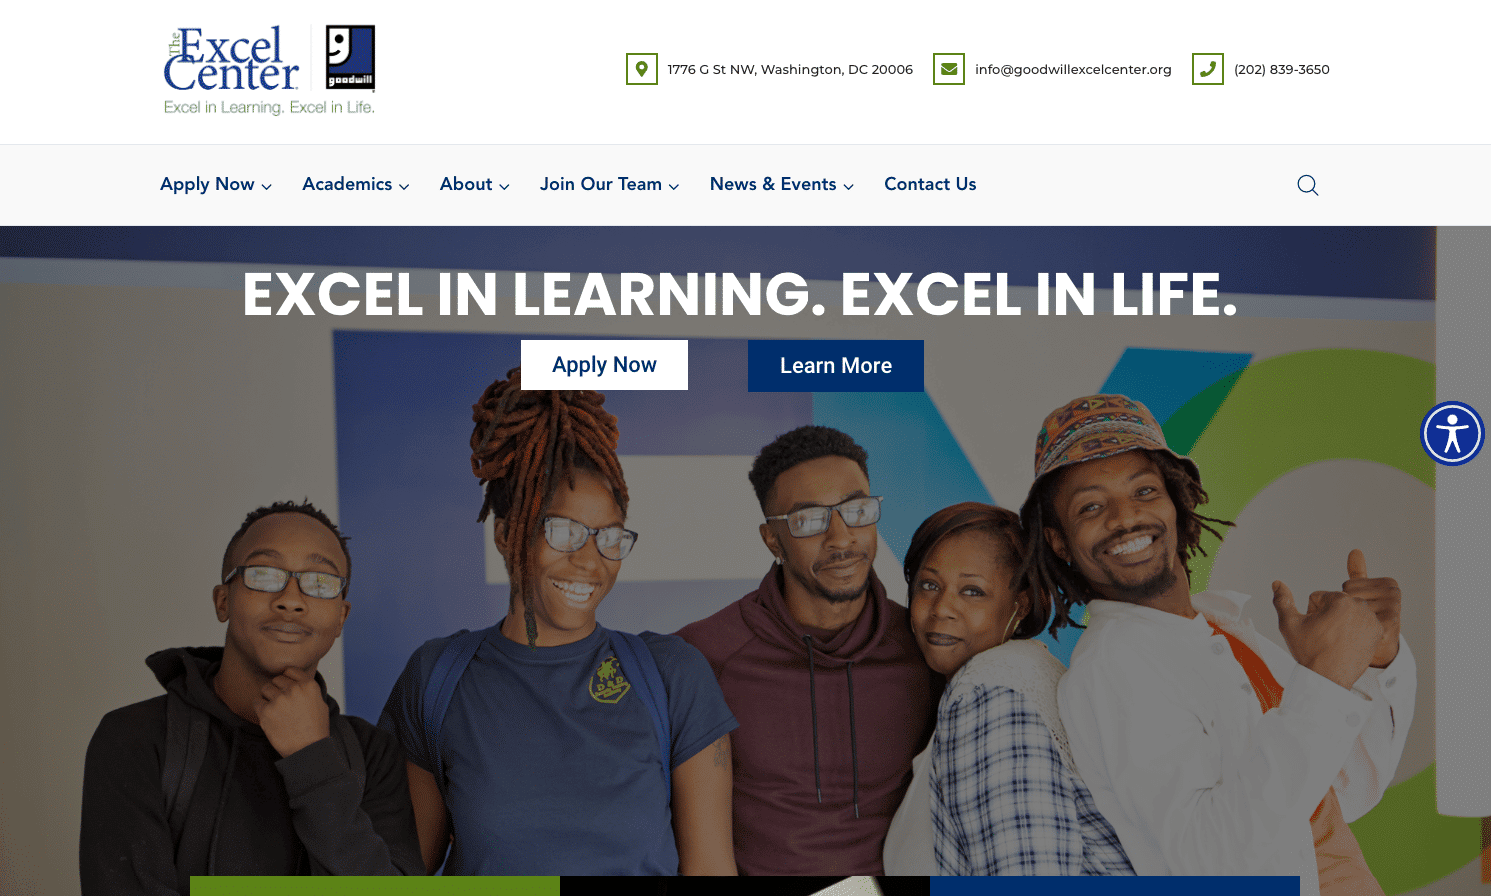 Screenshot of Alternative Education Program Uses New Website to Connect With Students